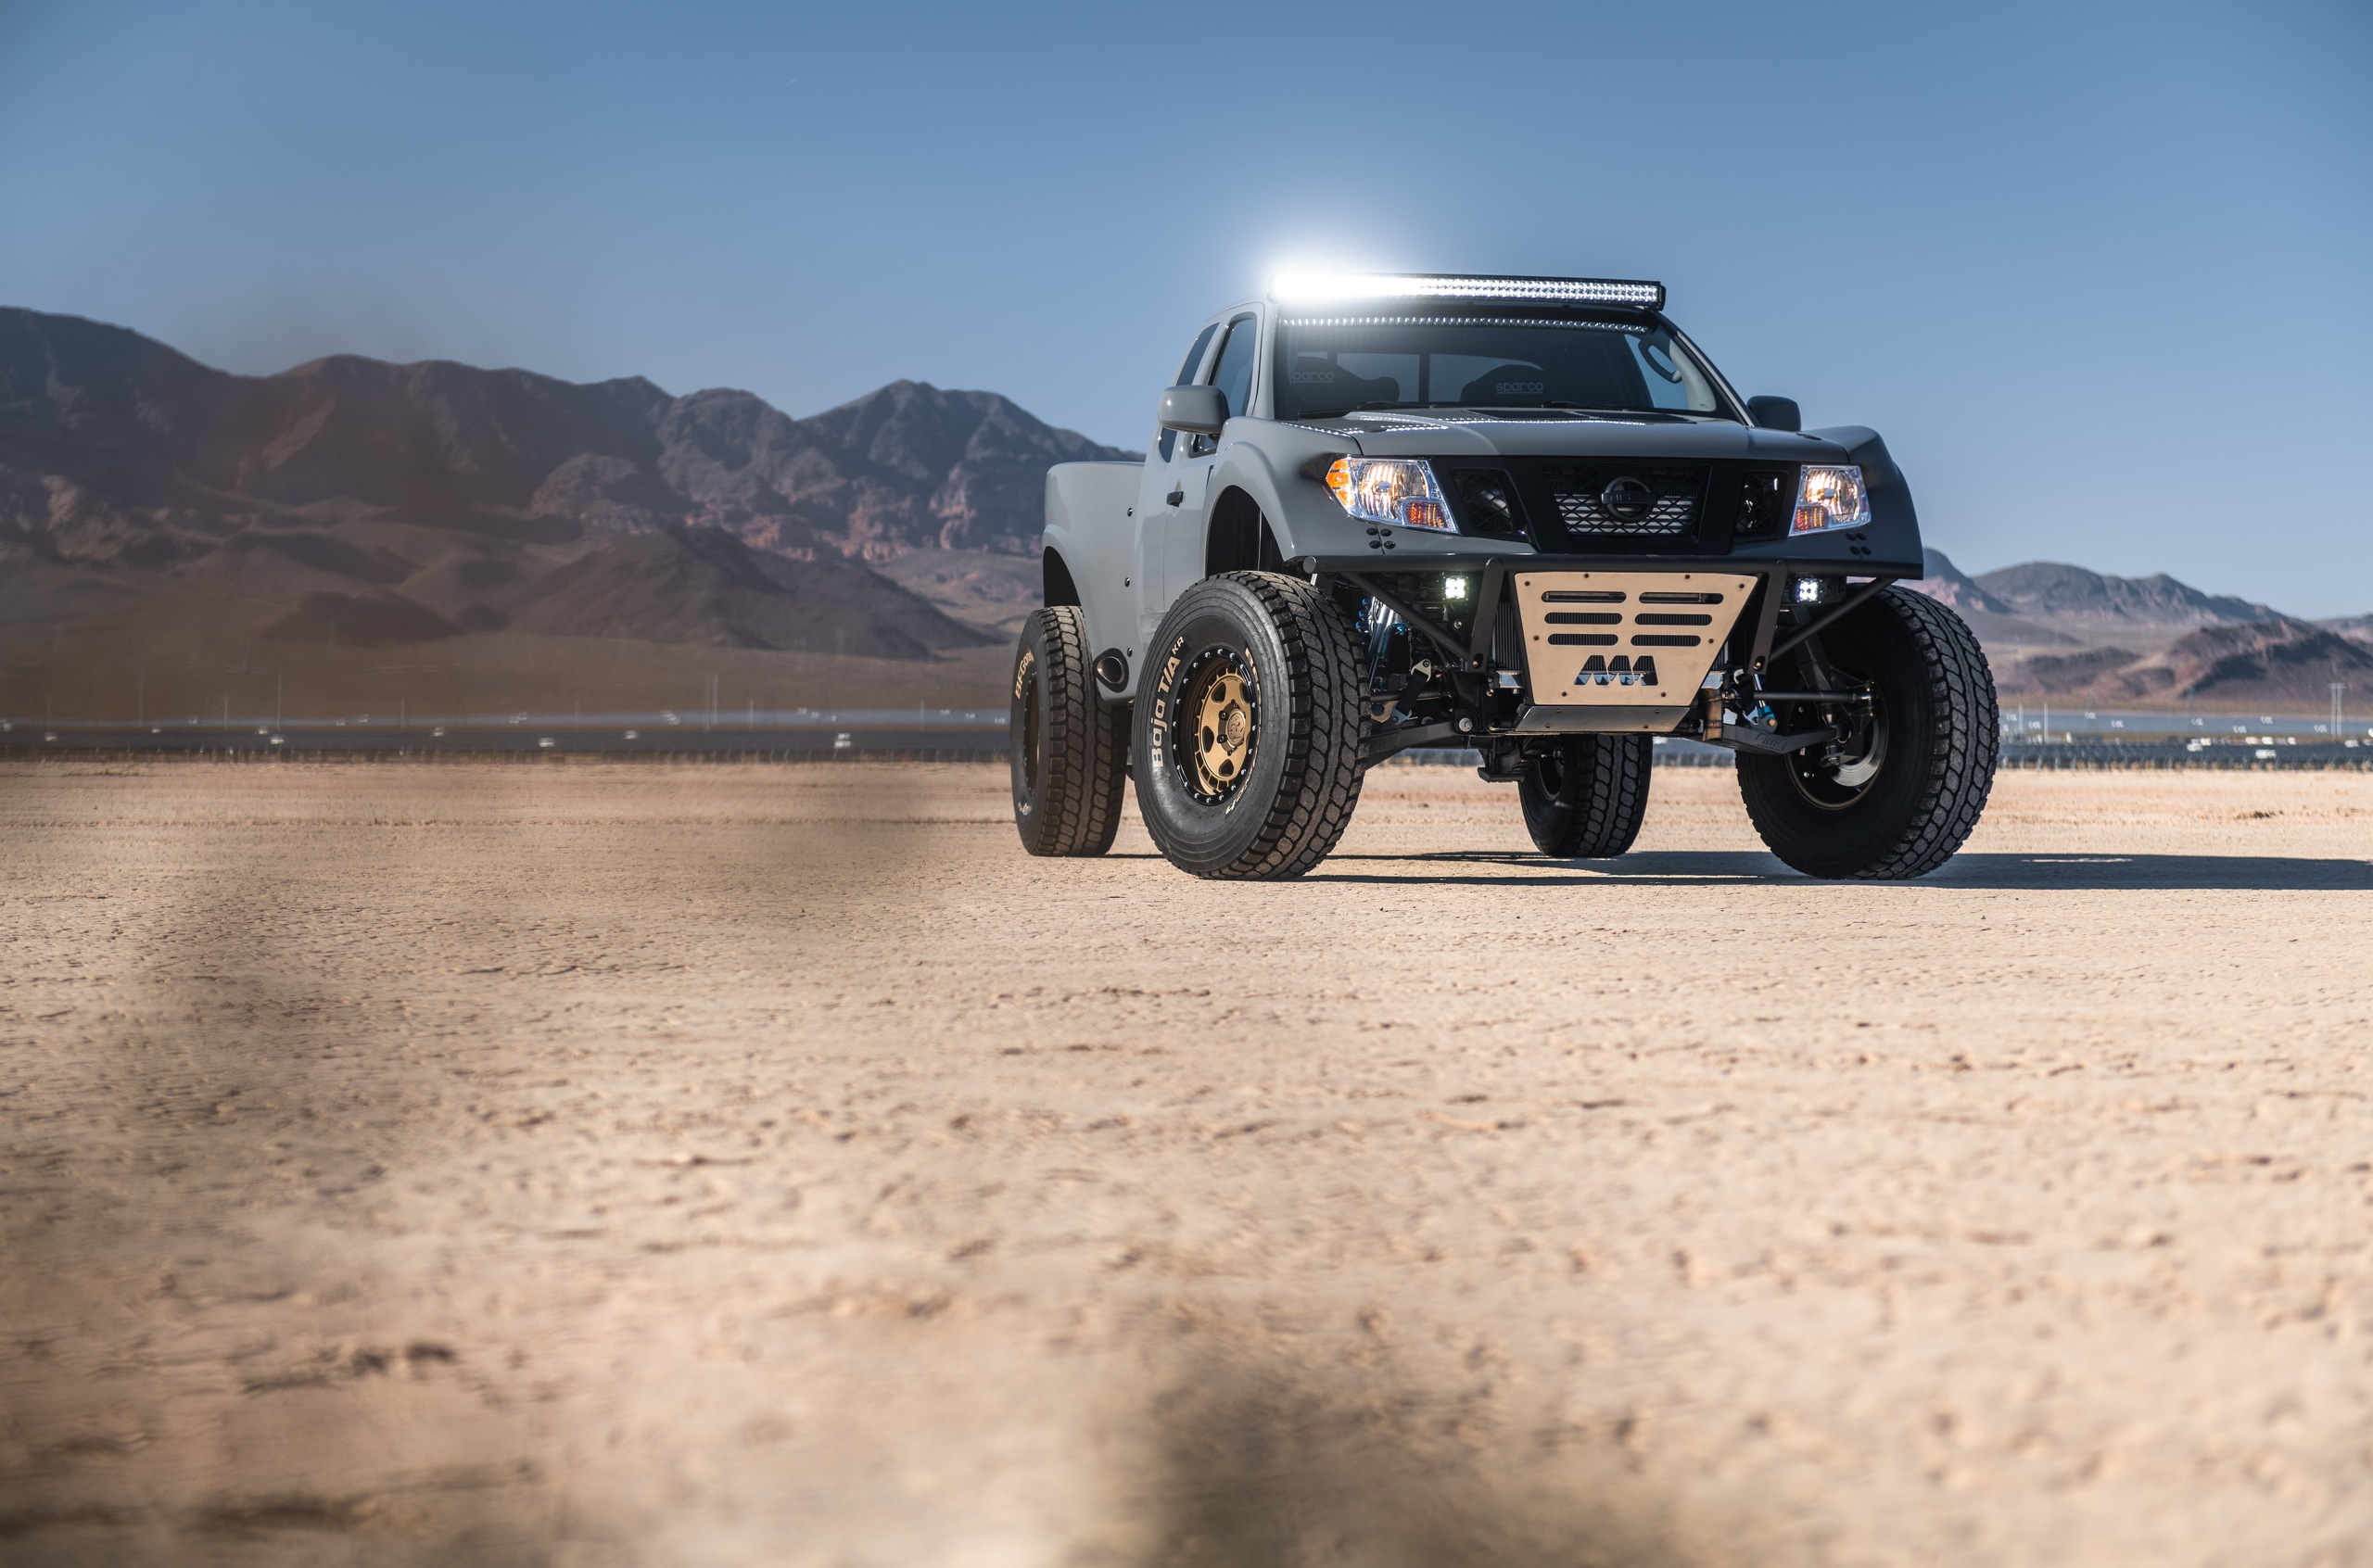 Let us have a look at yet another remarkable SEMA debutant: the Frontier Desert Runner pickup, fitted to dominate the sands.